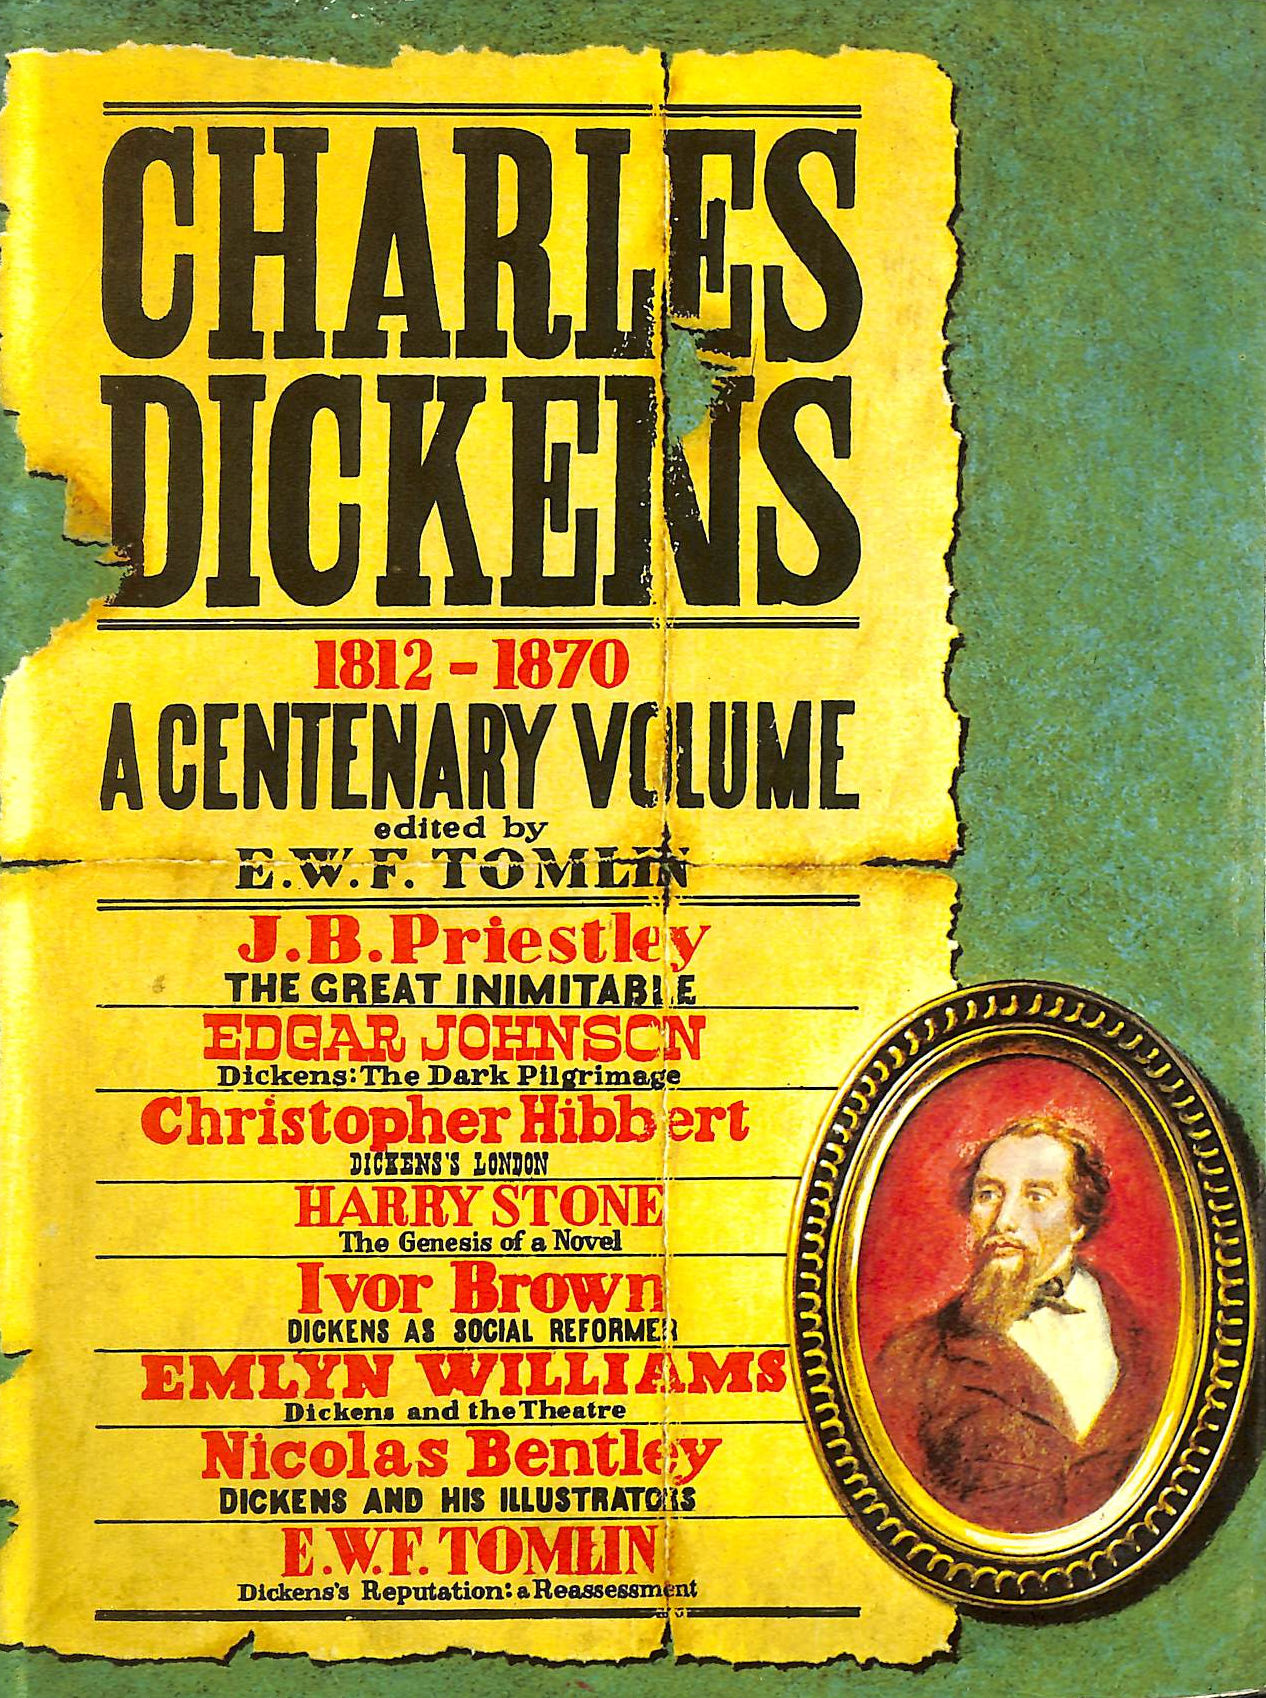 Image for Charles Dickens, 1812-70: A Centenary Volume